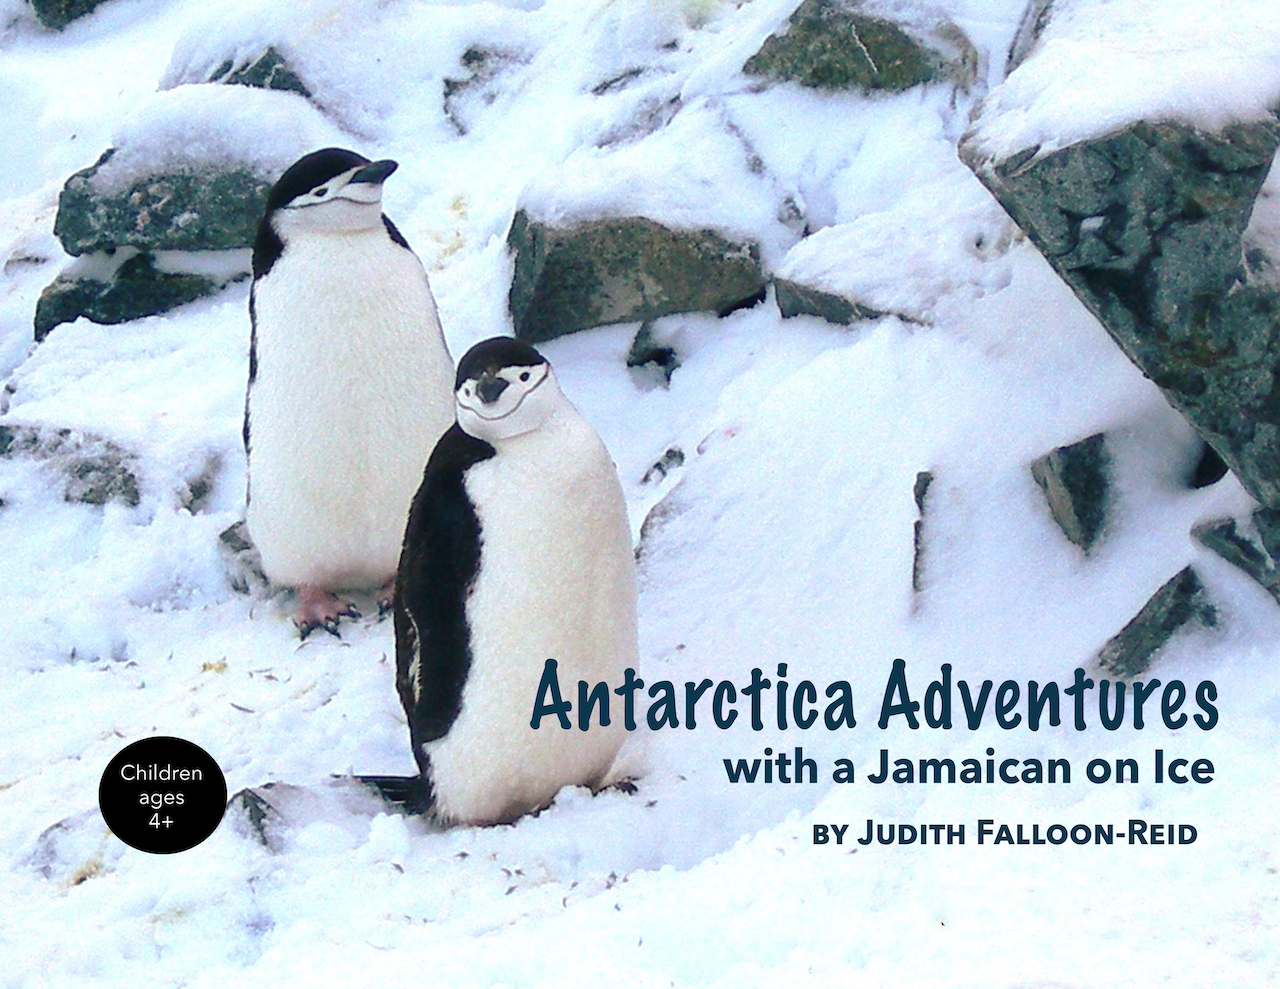 Antarctica Adventures with a Jamaican on Ice